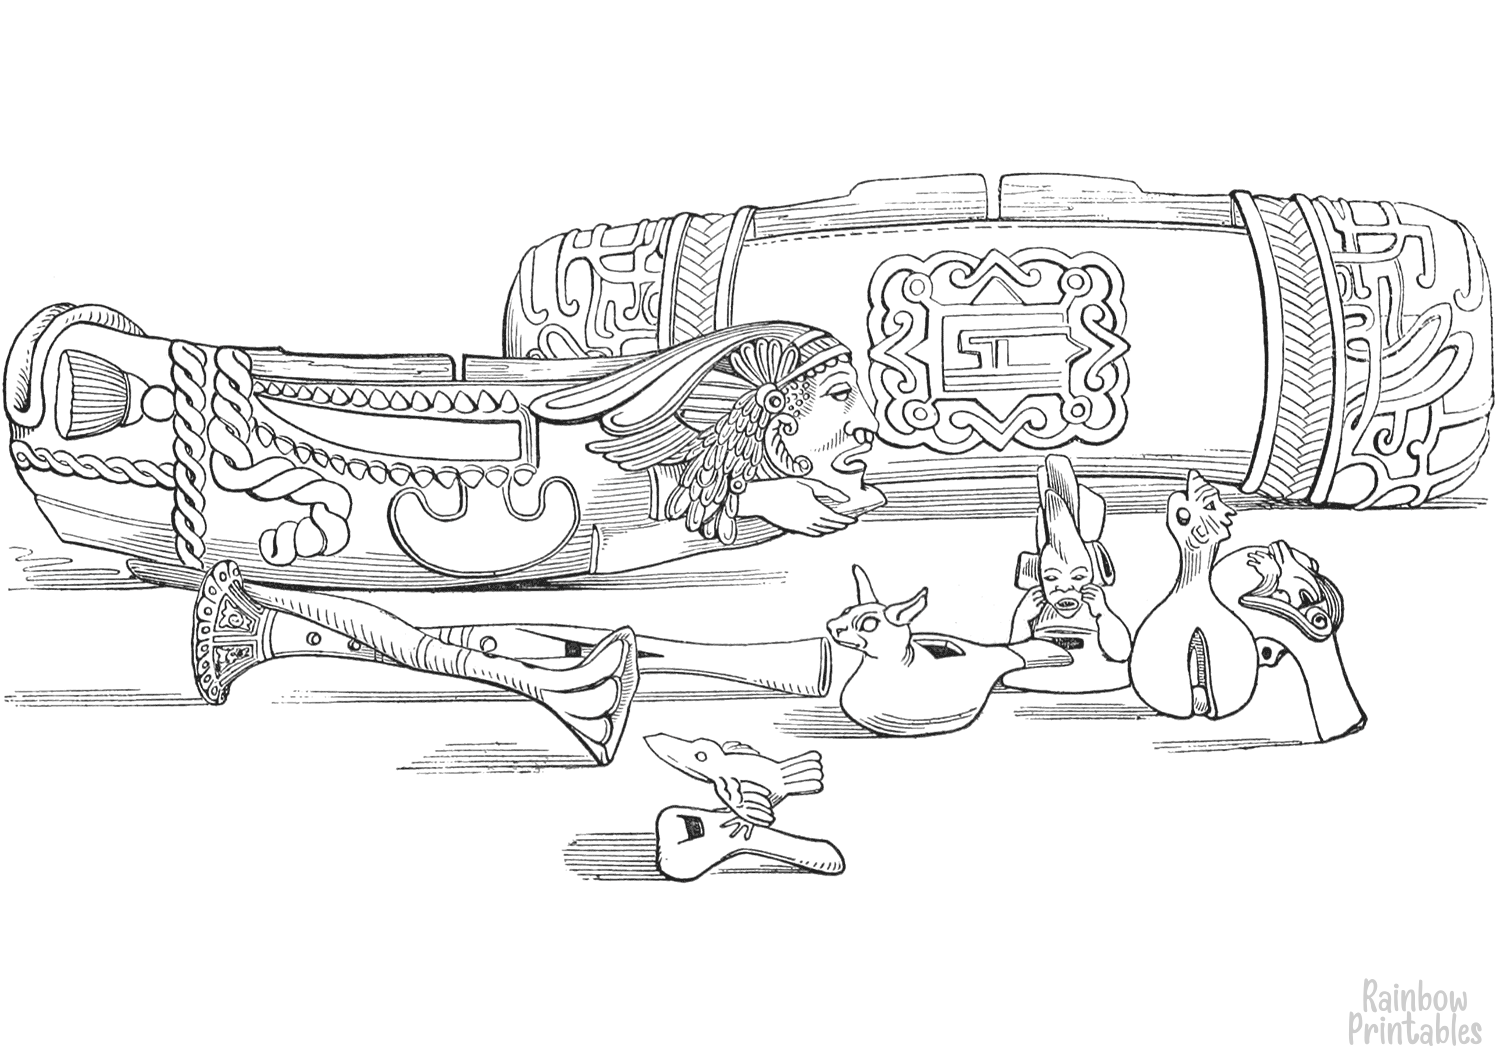 cartoon-line-art-world-cultures-aztec-musical-instruments-coloring-page-for-kids